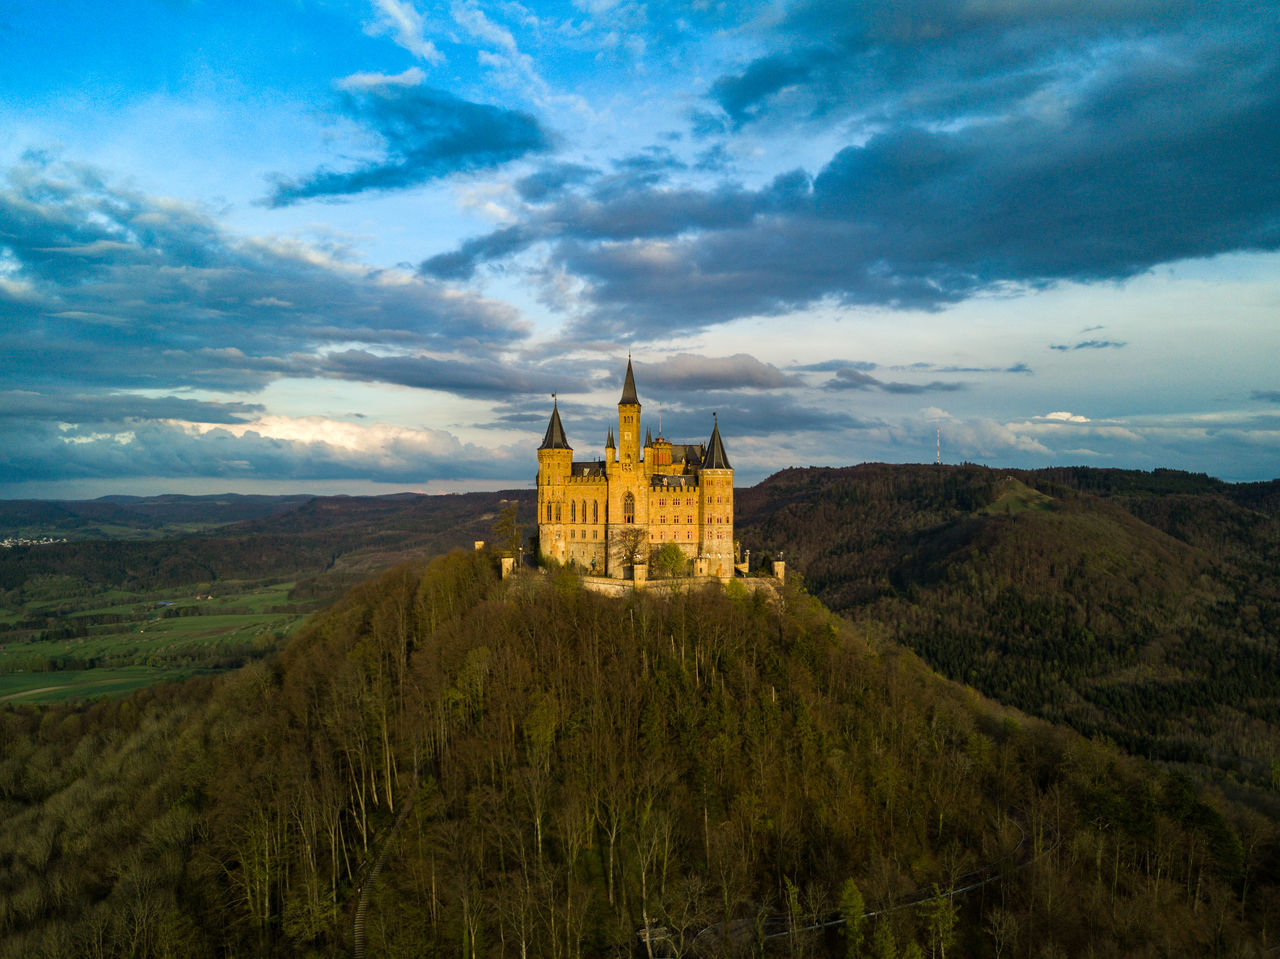 Architecture Castle Castle Cloud - Sky Dramatic Sky Drone  Dronephotography Fairytale  Fairytales & Dreams Frontal Shot Germany History Landscape Nature No People Outdoors Scenics Sky Sunset Travel Destinations